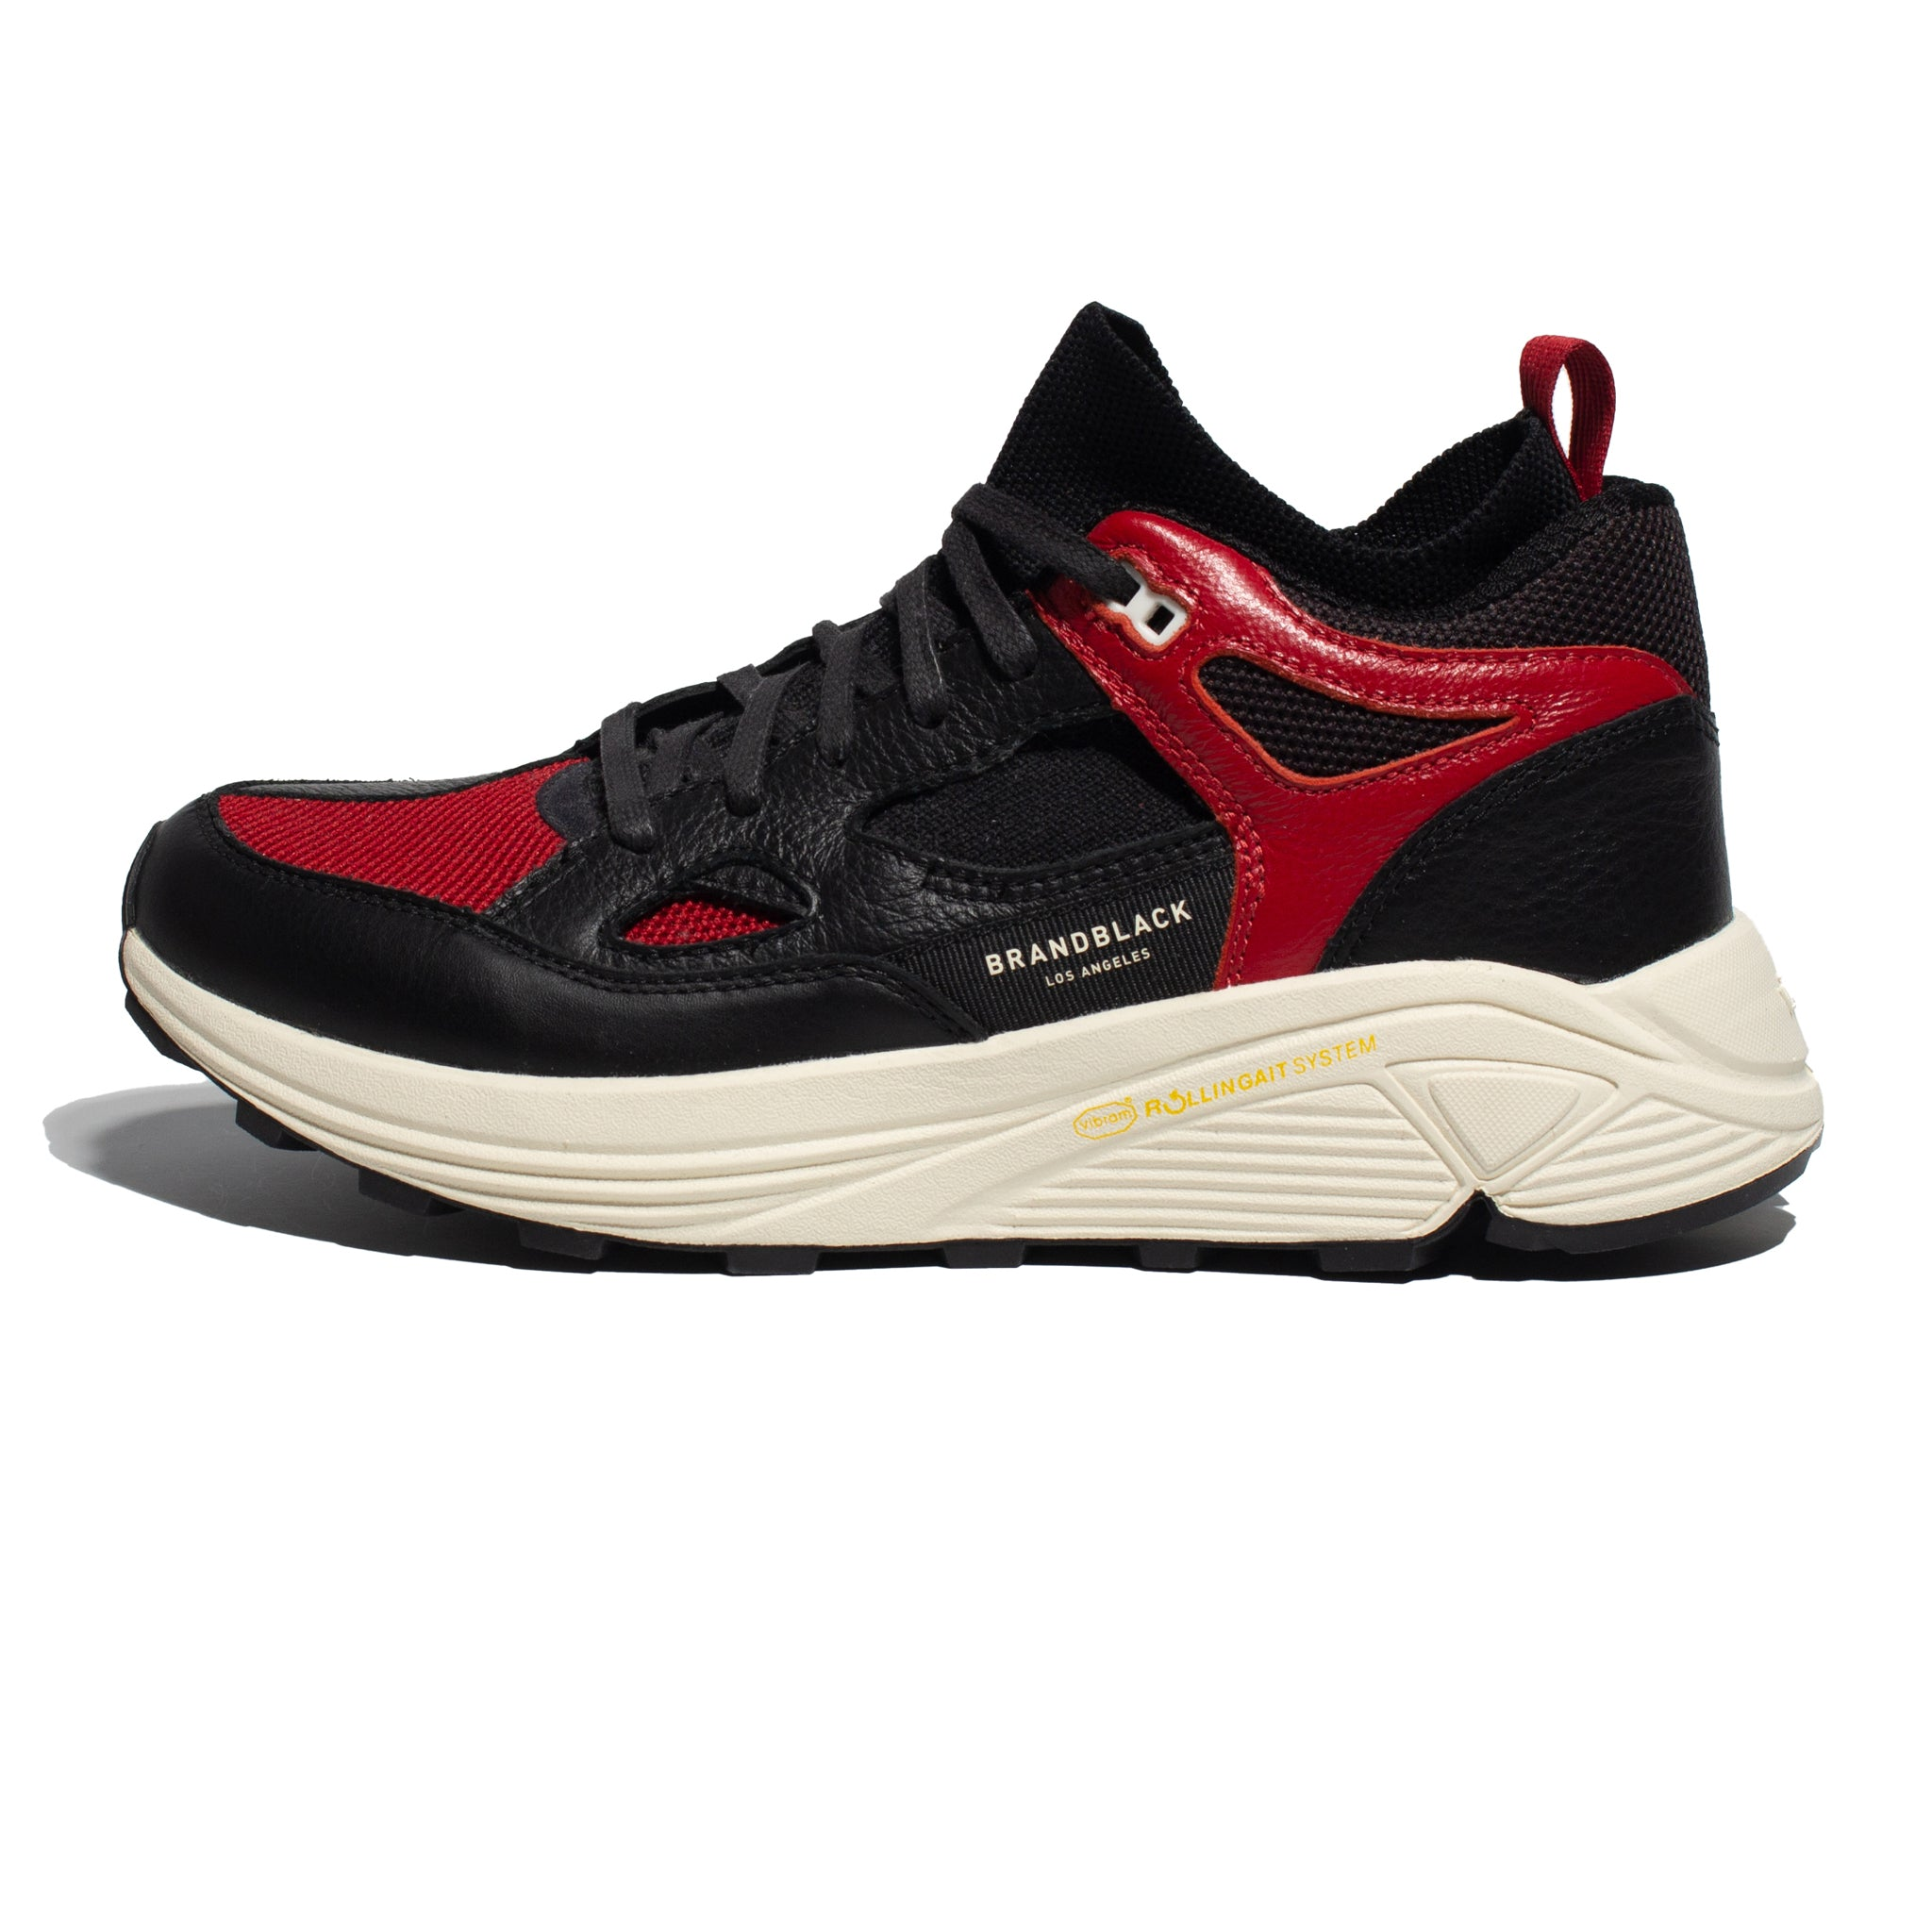 Brandblack Aura Black/Red